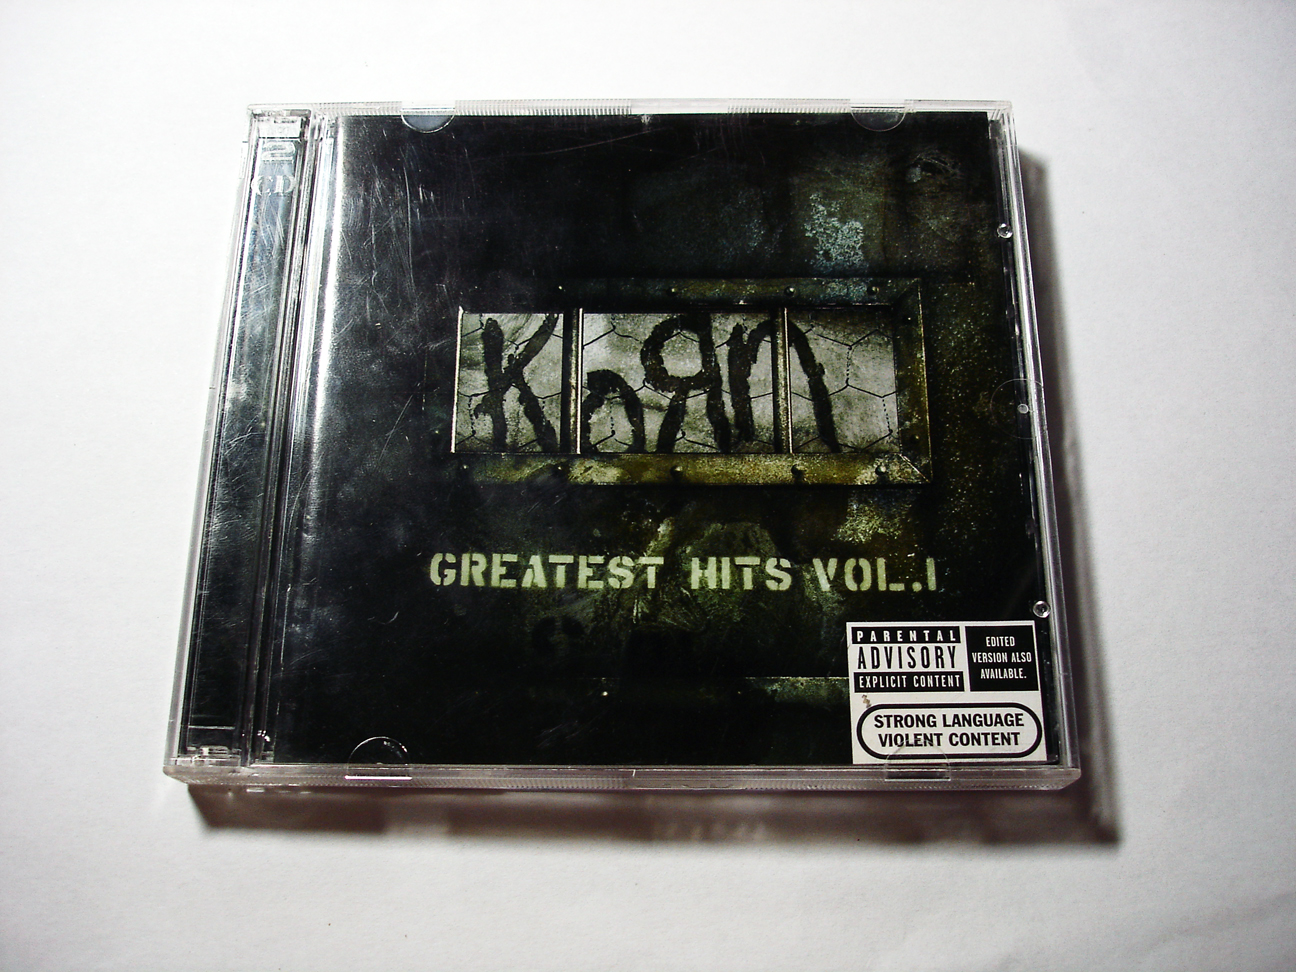 (compilation) Greatest Hits Vol.1 (CD & ..